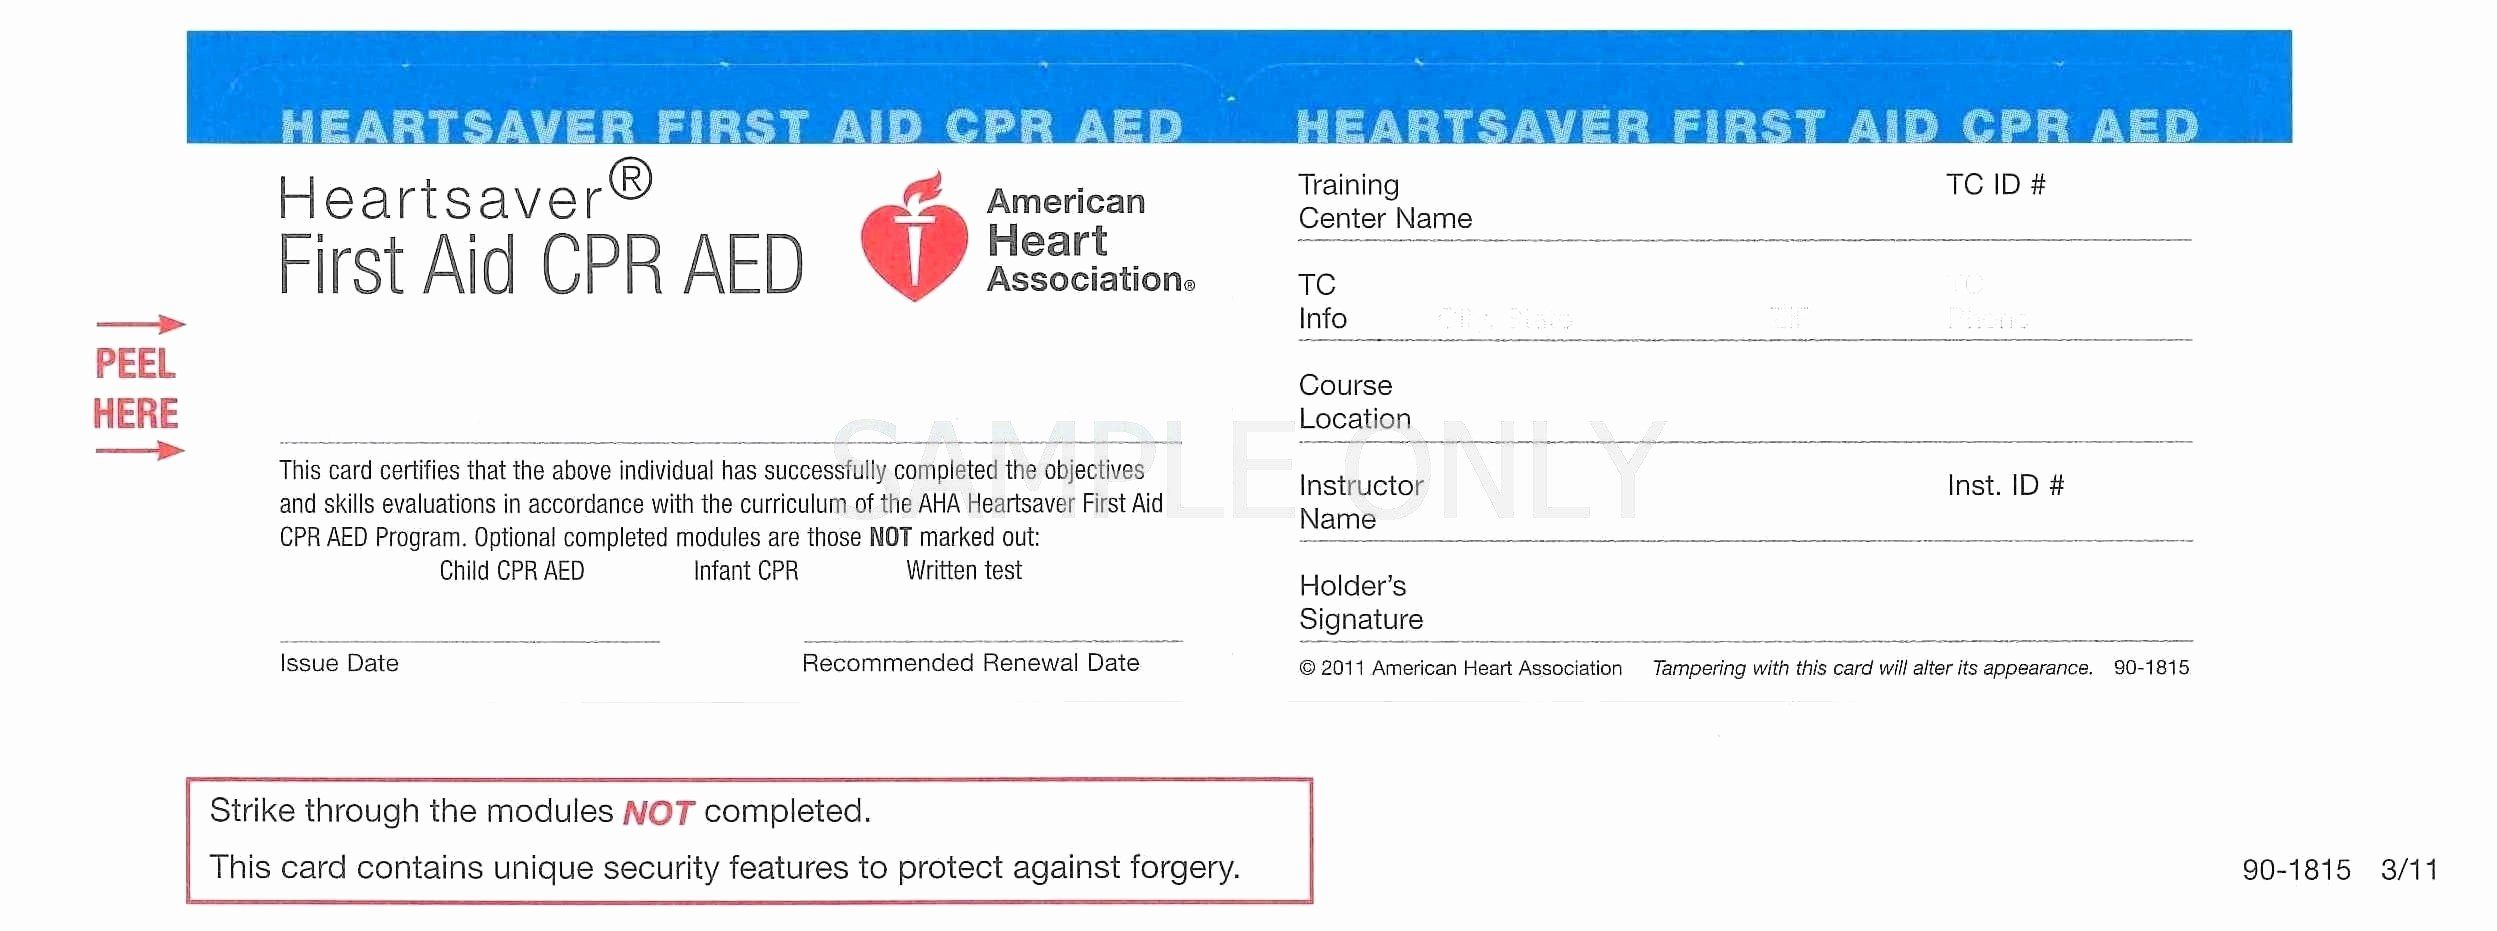 Fake Auto Insurance Card Template Beautiful 11 Elegant Fake Earnings Statement Maotme Life Cpr Card Card Template Business Template